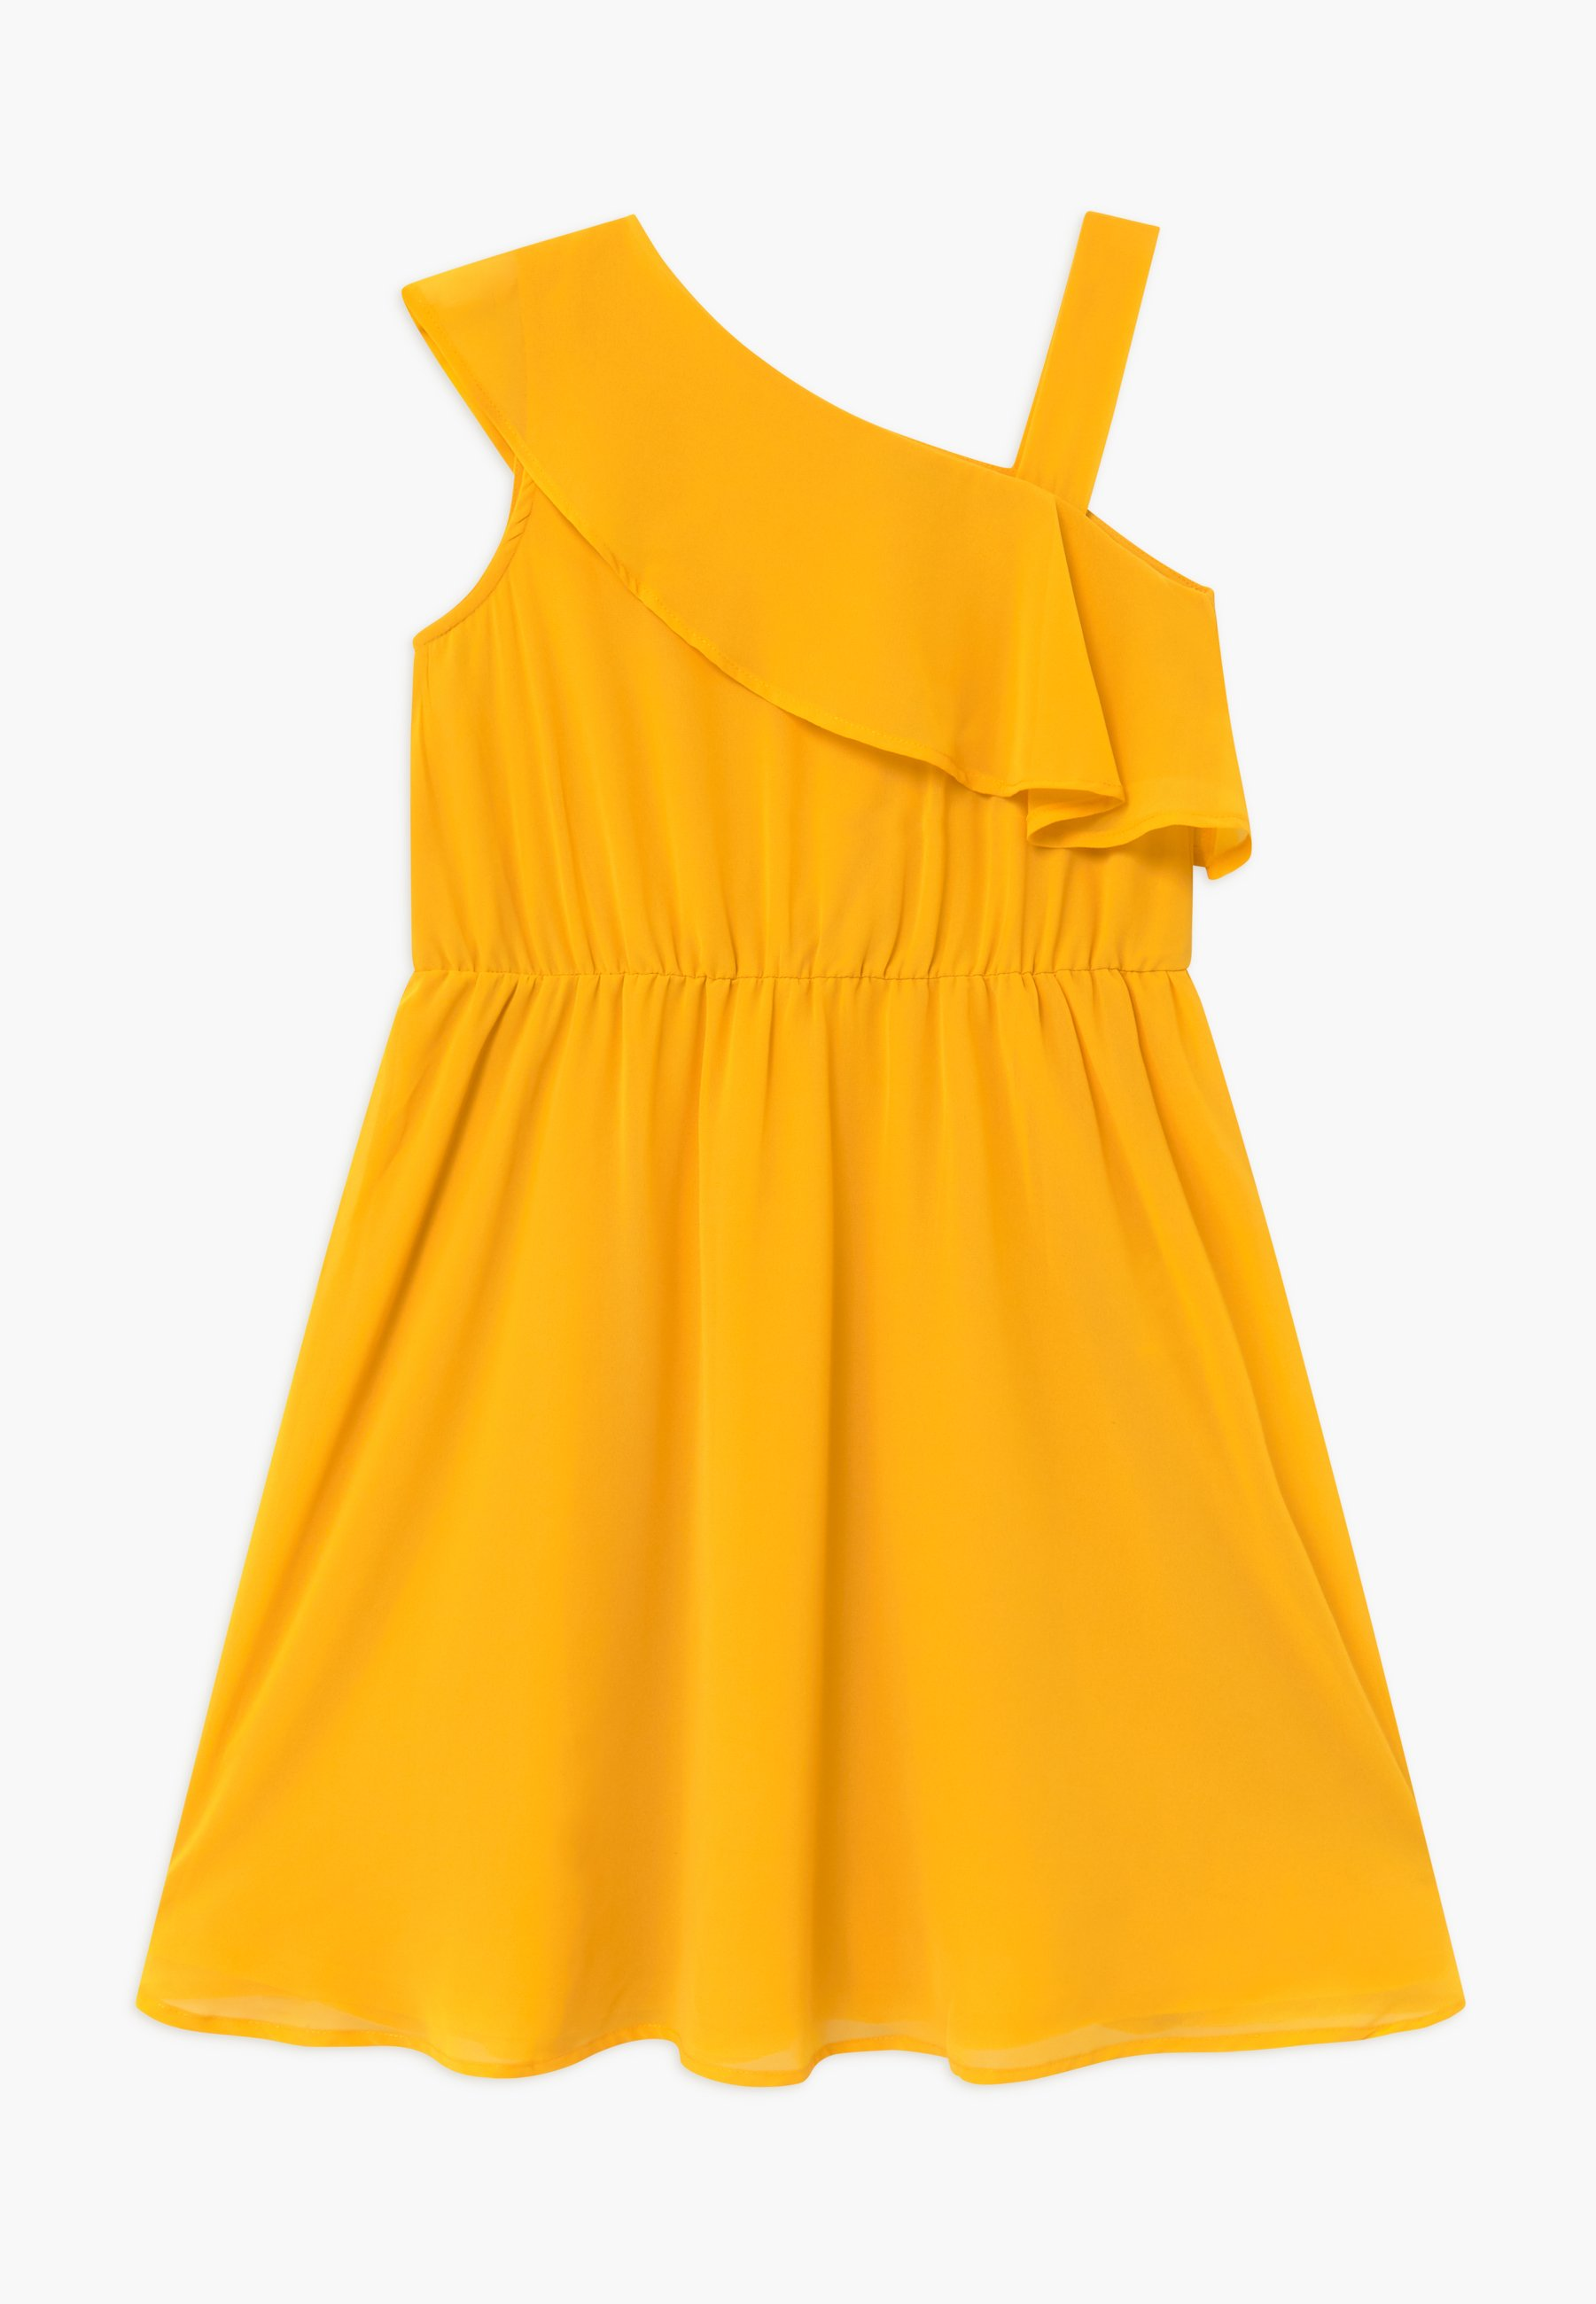 lemon beret cocktailkleid/festliches kleid - golden rod/senf